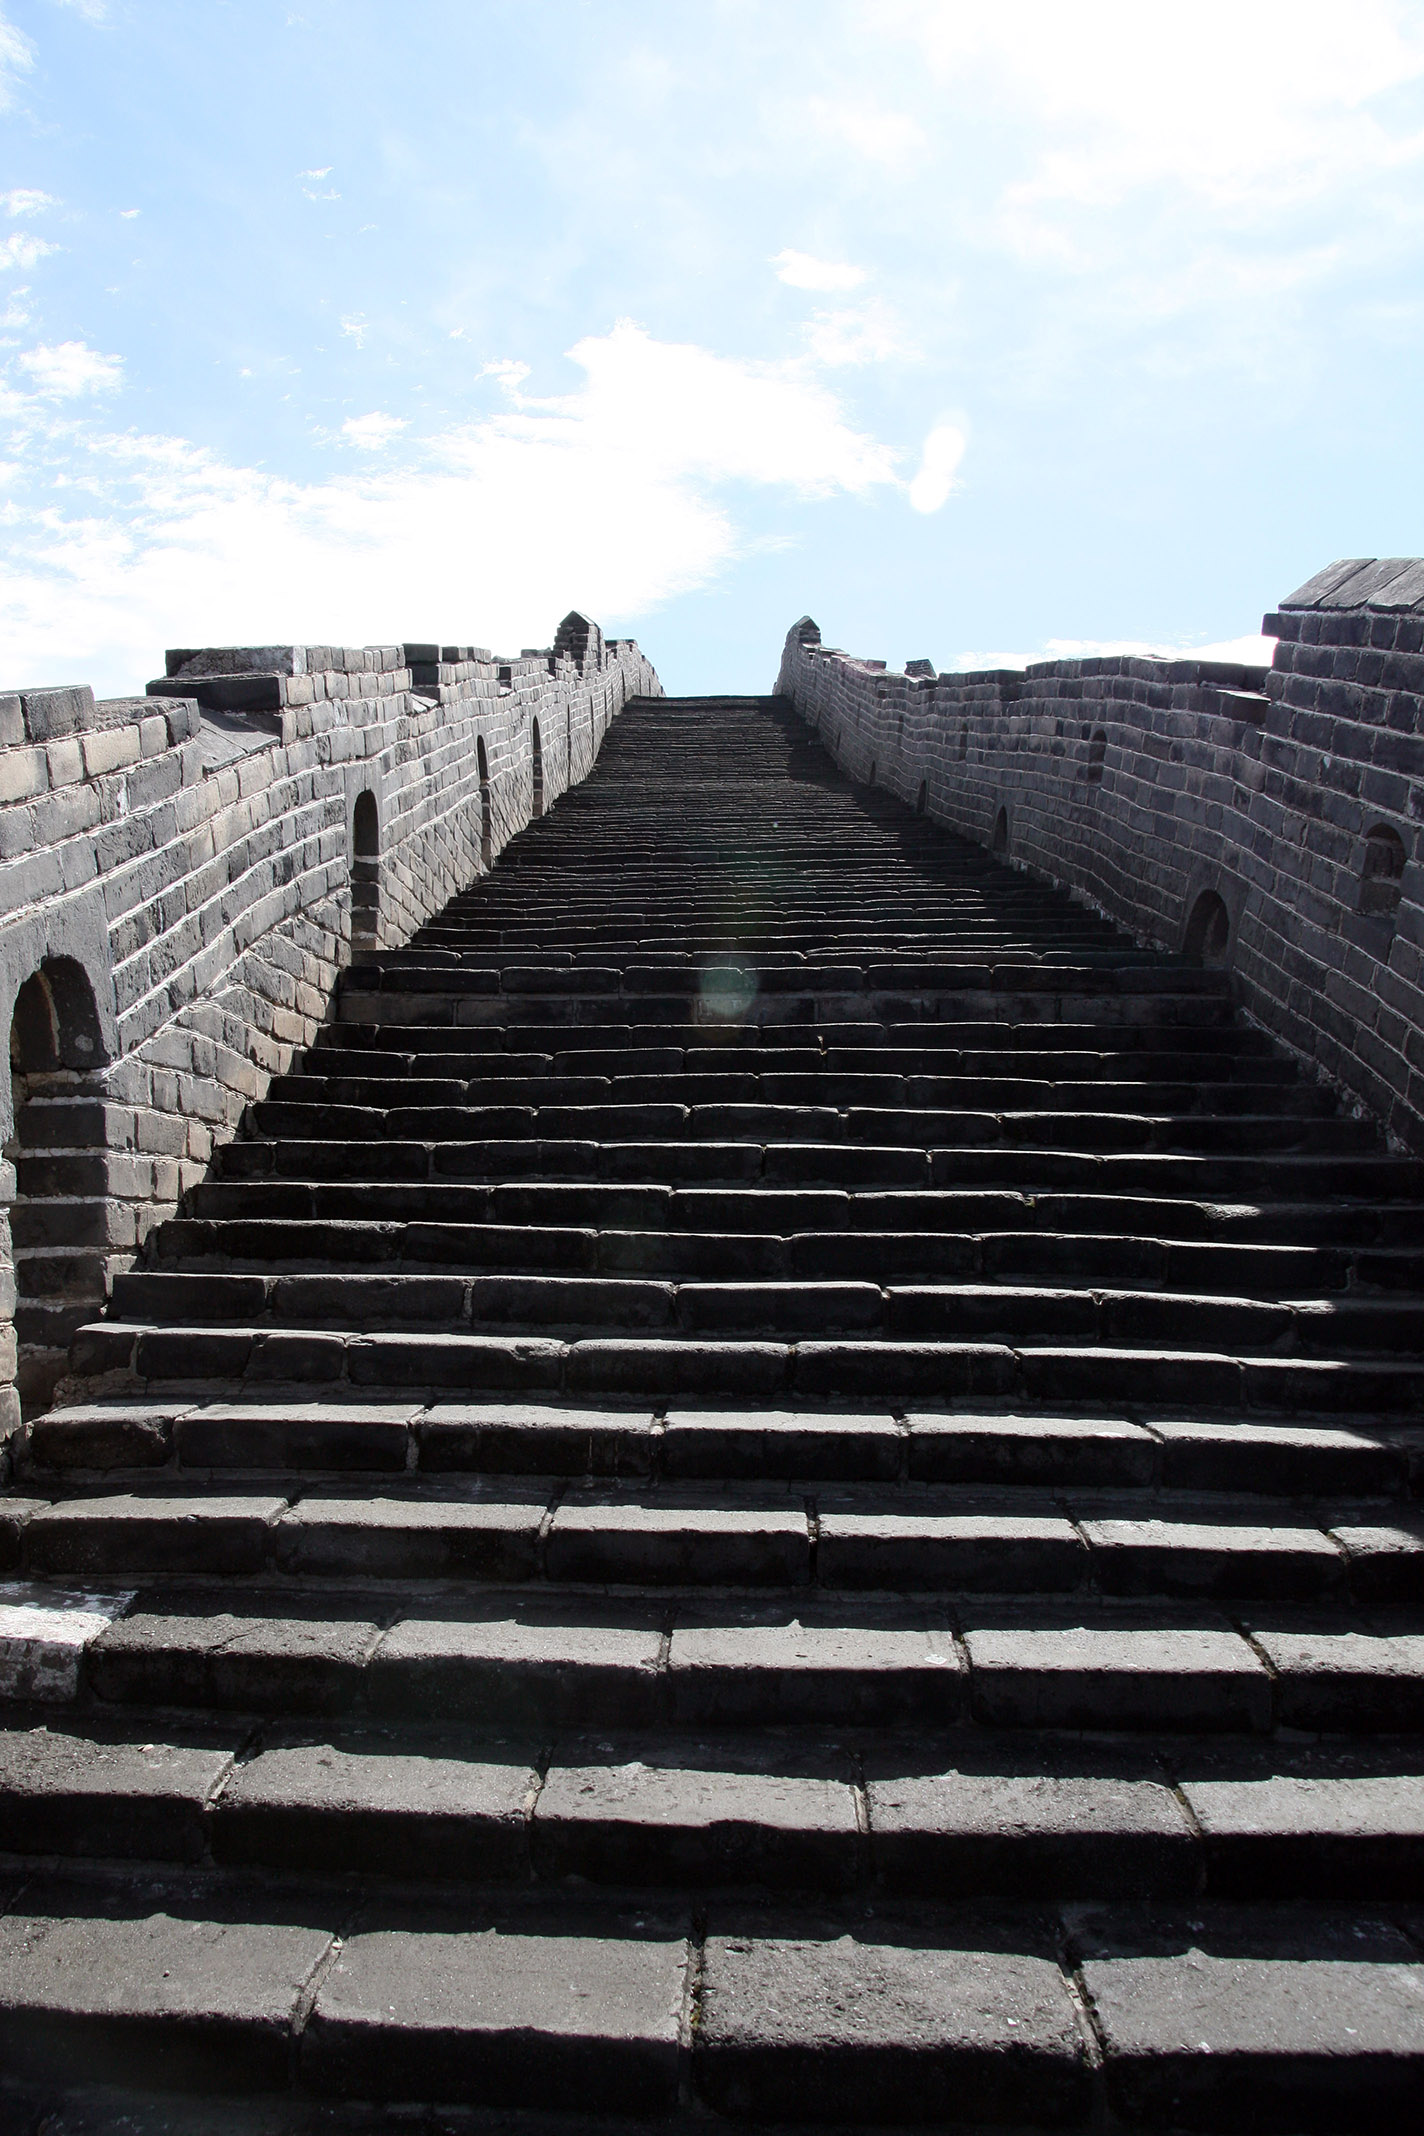 Starway_to_Heaven_1890.jpg - The Great Wall (at Simatai): A view from the top of the wall.. Stairs, stairs, stairs..